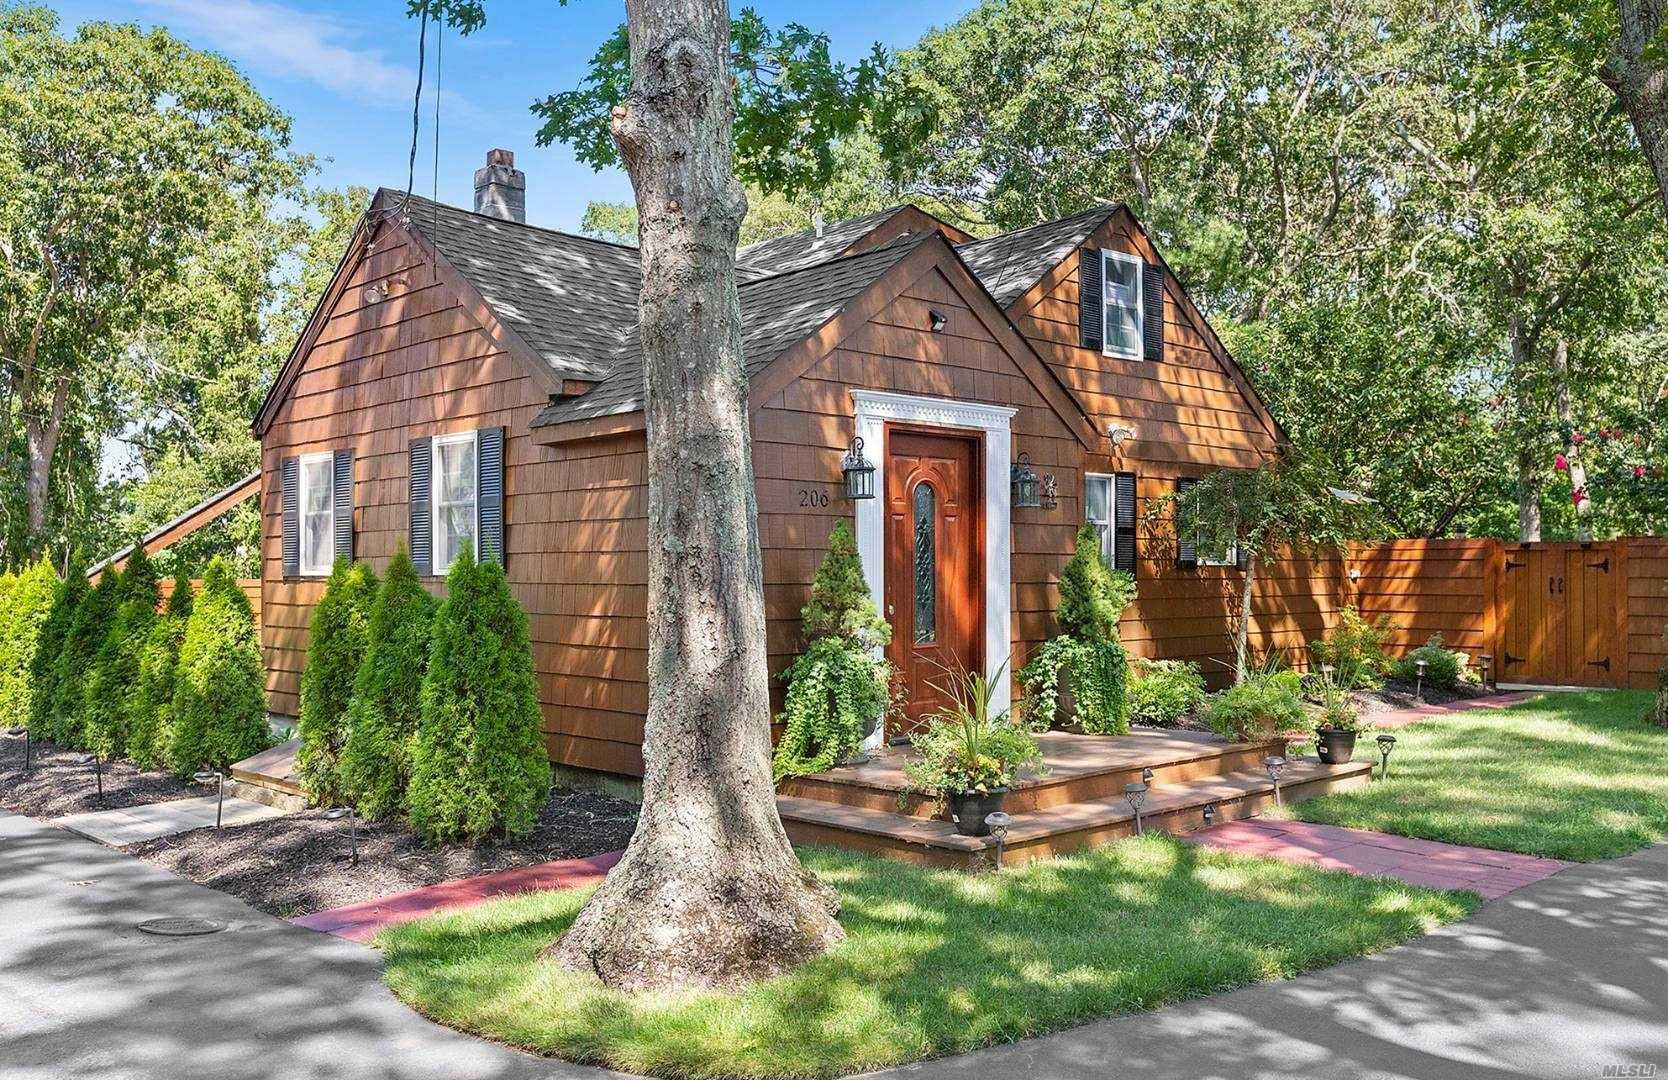 206 Old Wakeman Road, Hampton Bays, NY 11946 - MLS#: 3245273